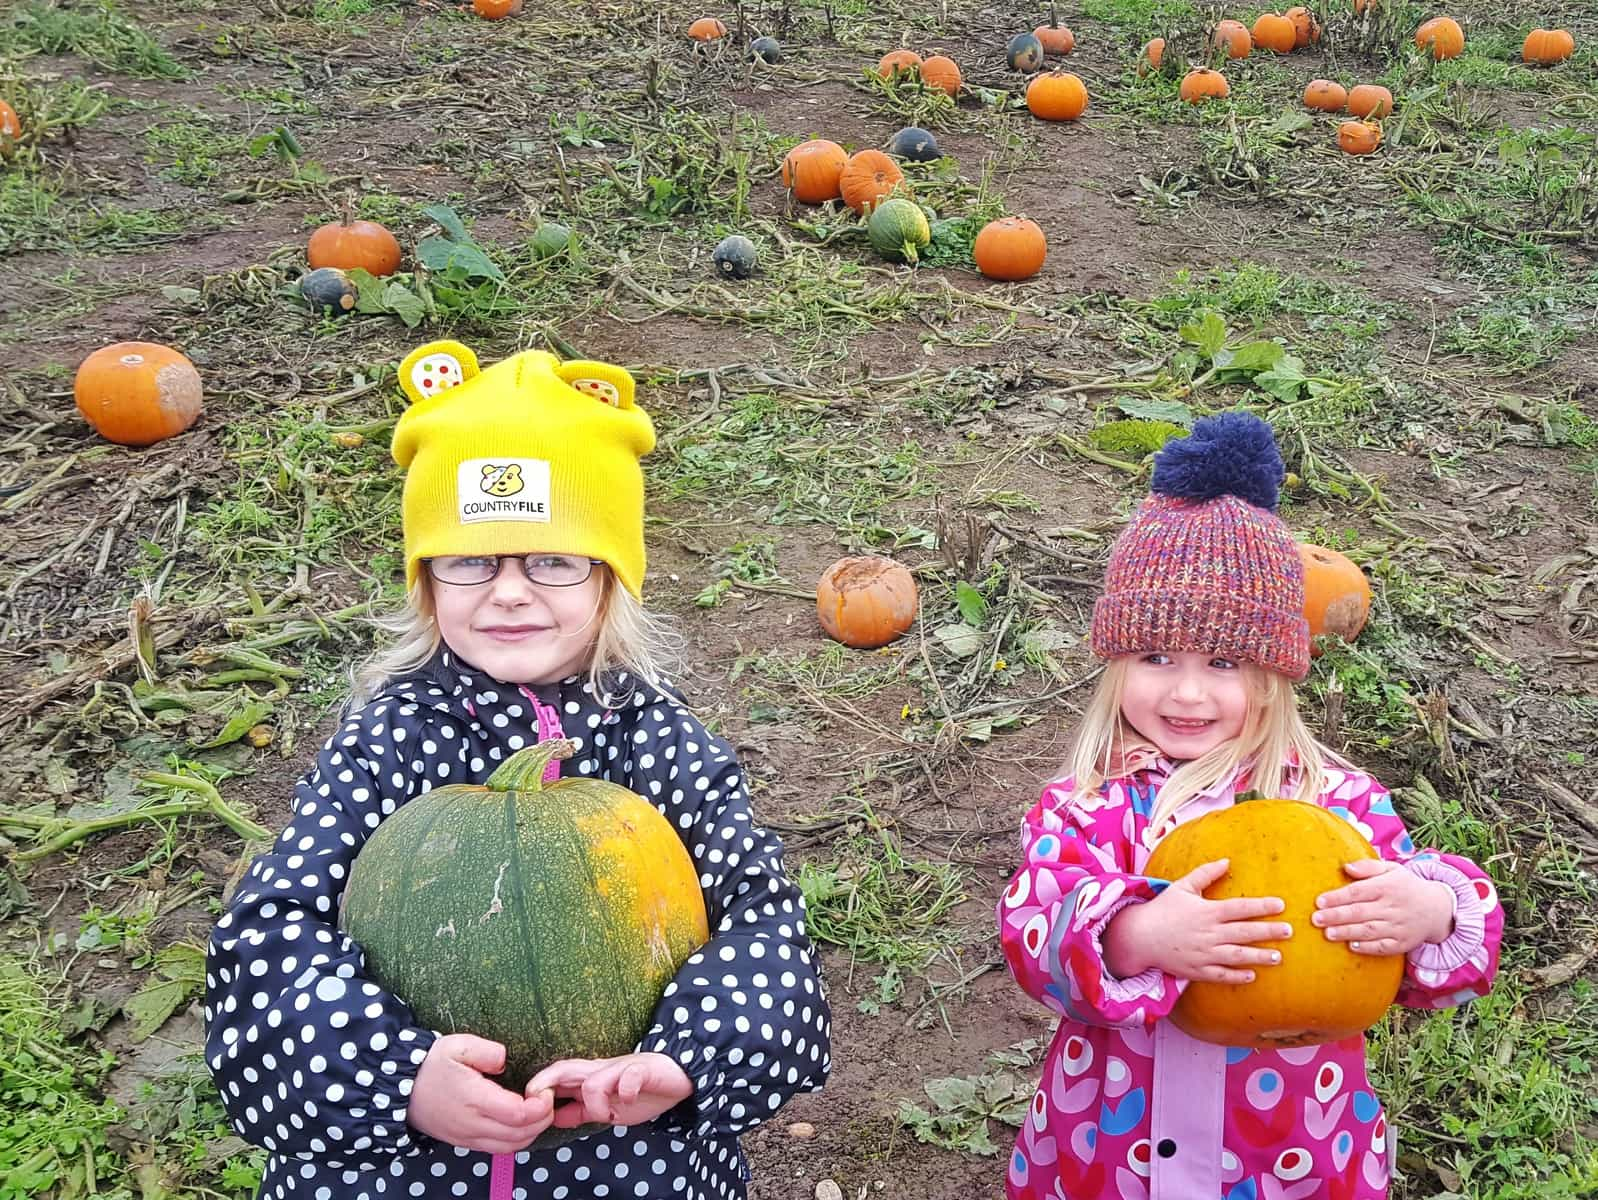 National Forest Adventure Farm | Situated in Staffordshire in the West Midlands, UK - the National Forest Adventure Farm is the perfect day out for children and families who like to be outdoors. On Halloween, pick your own pumpkin from the pumpkin patch to take home with you. Plus, see all the other scary goings on. #Halloween #WestMIdlands #NationalForest #familytravel